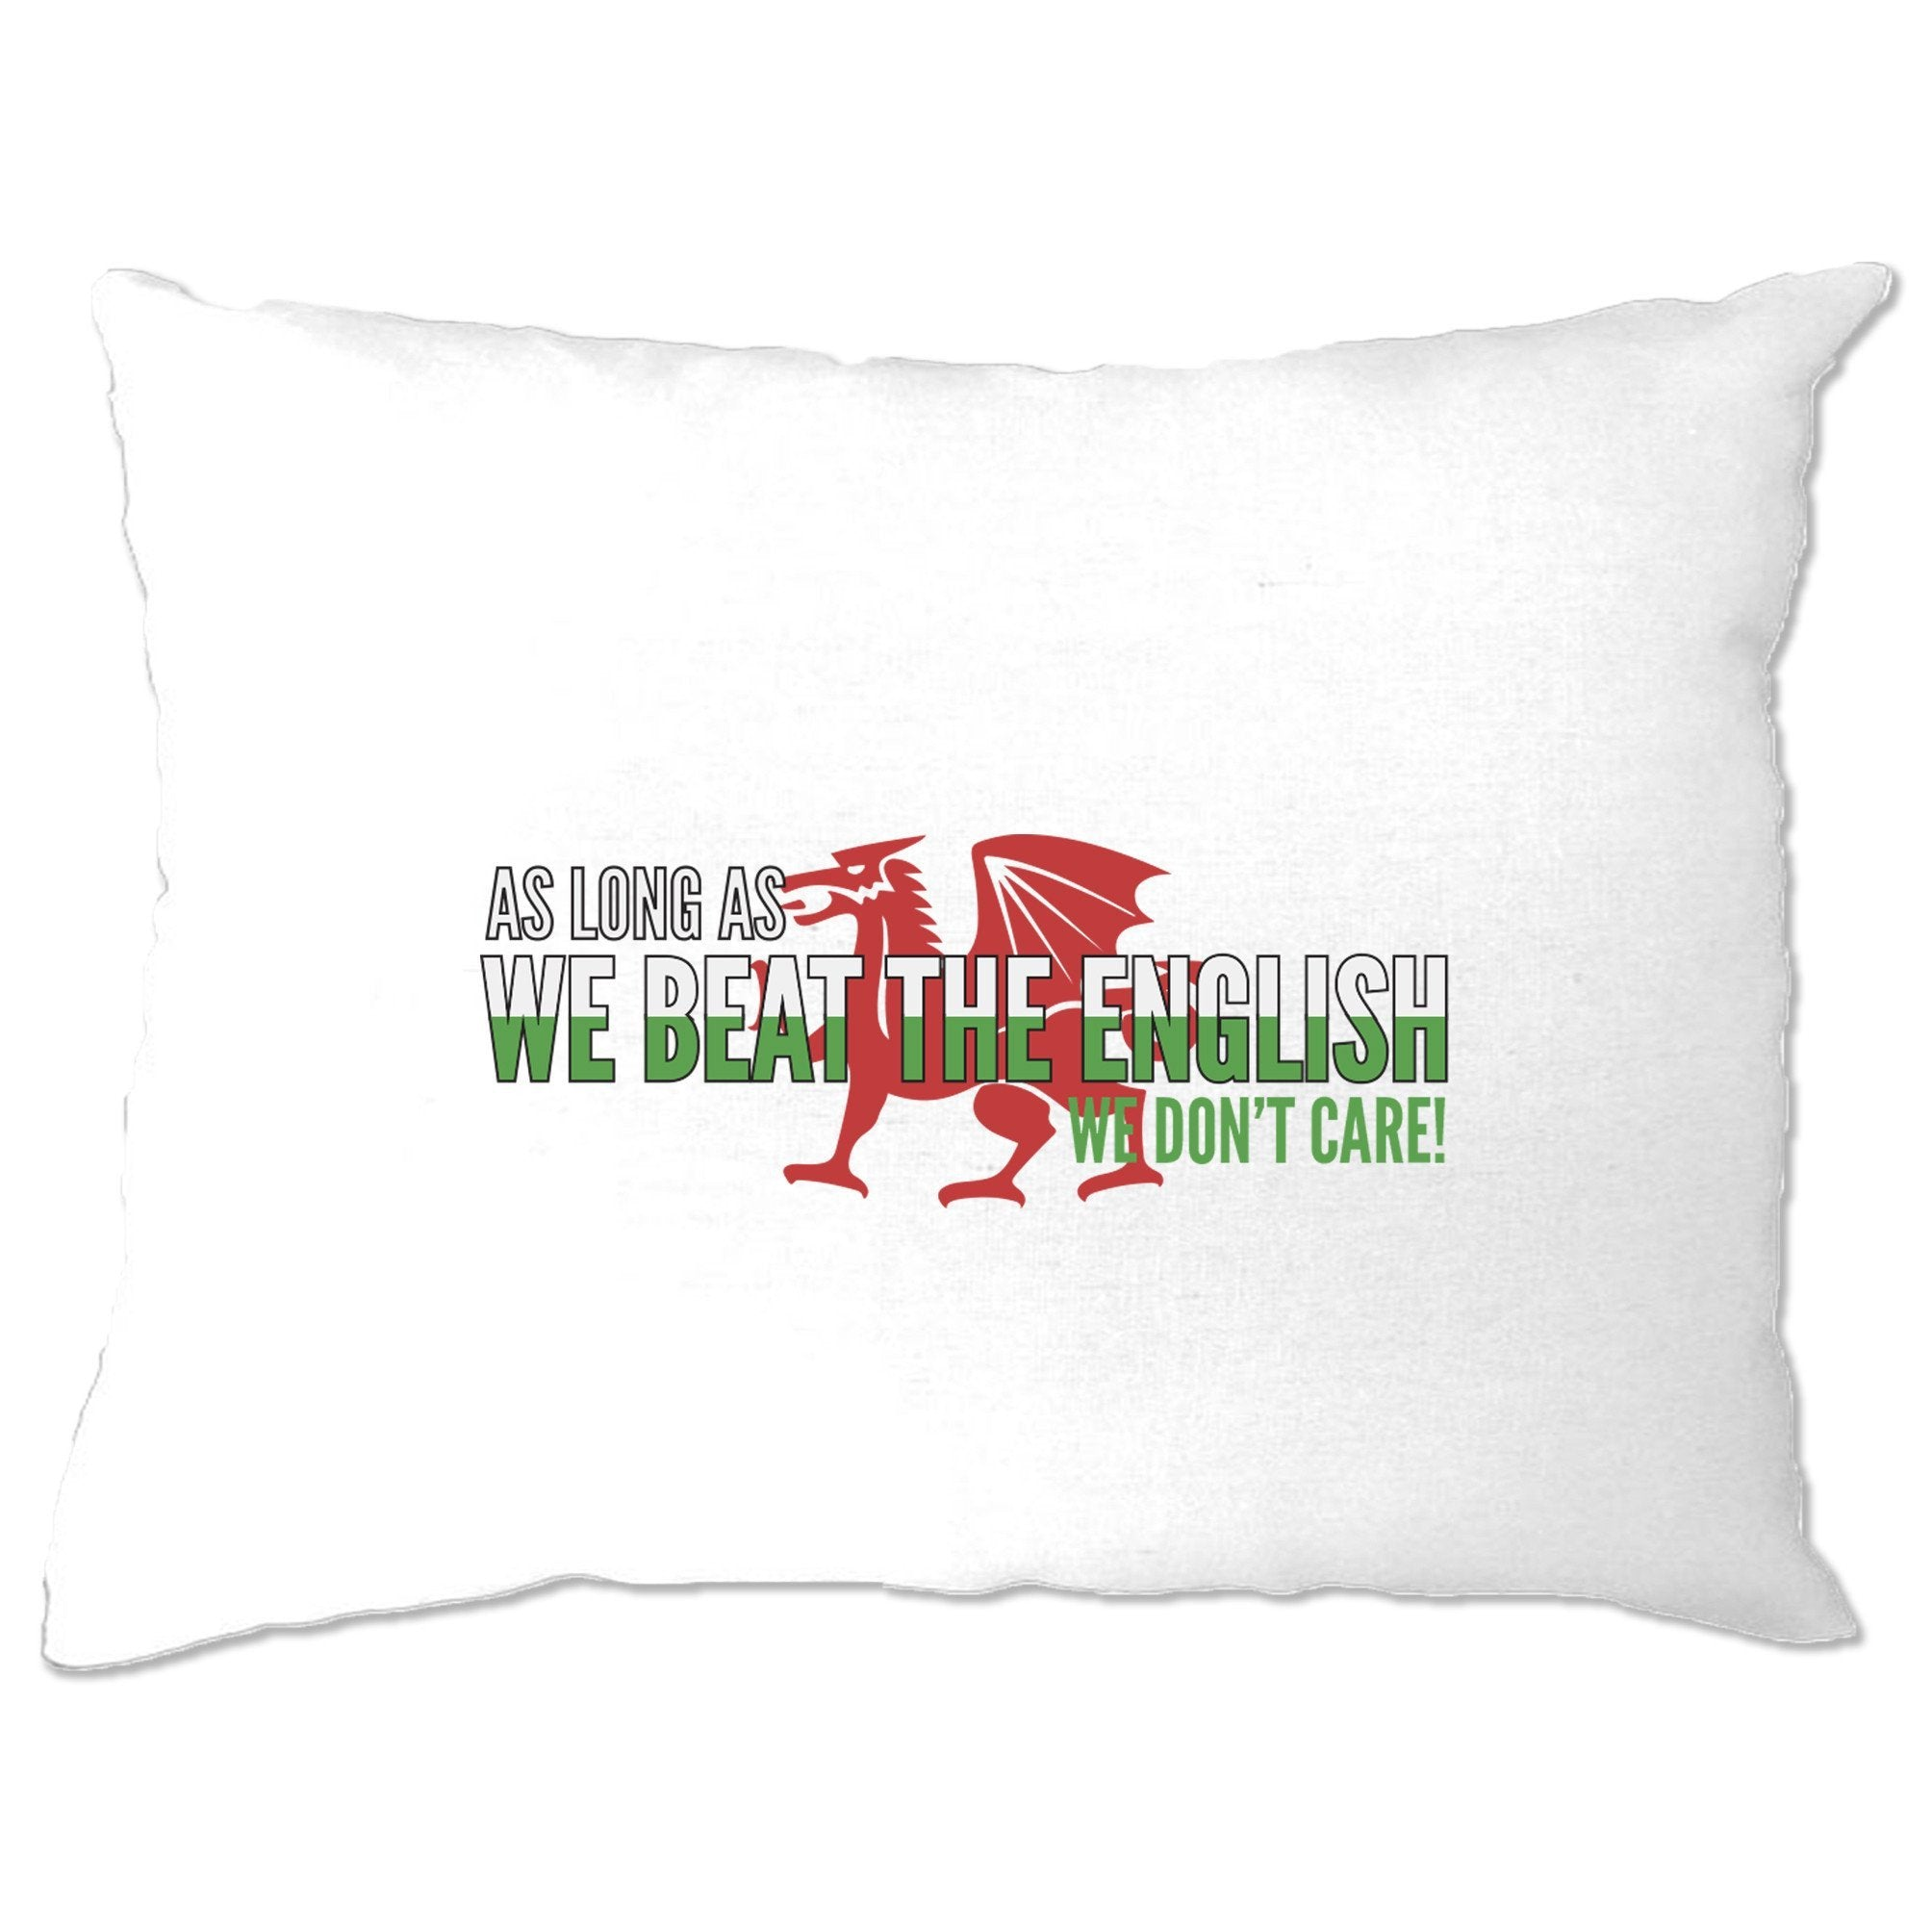 Novelty Welsh Pillow Case As Long As We Beat The English